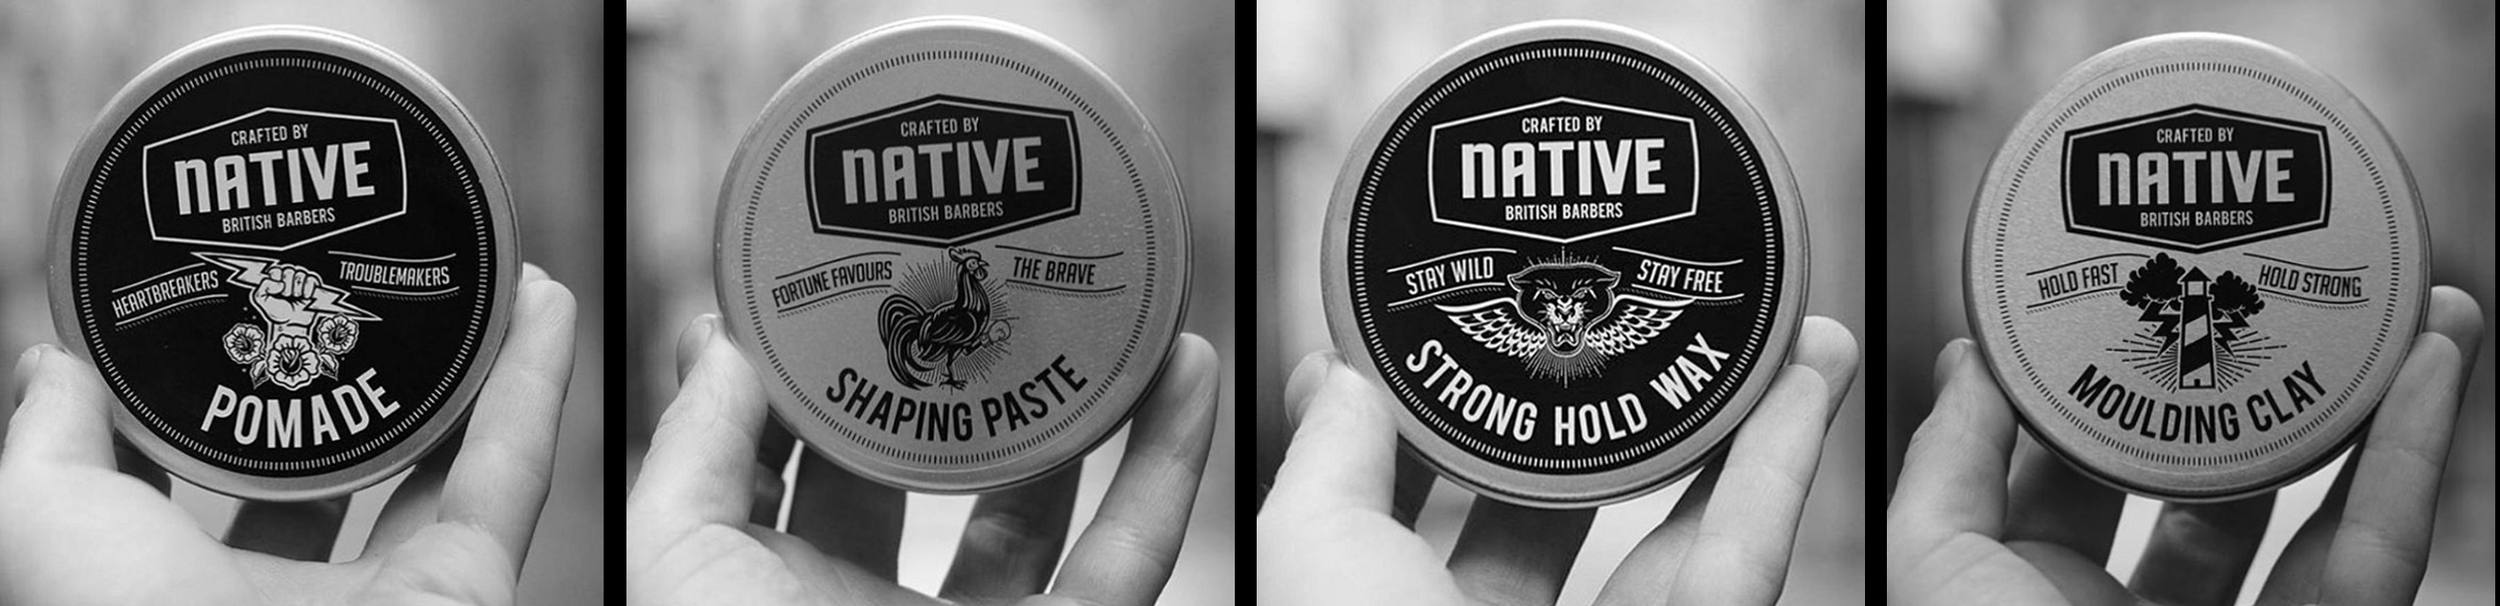 Native Products Pomade | Shaping Paste | Strong Hold Wax | Moulding Clay